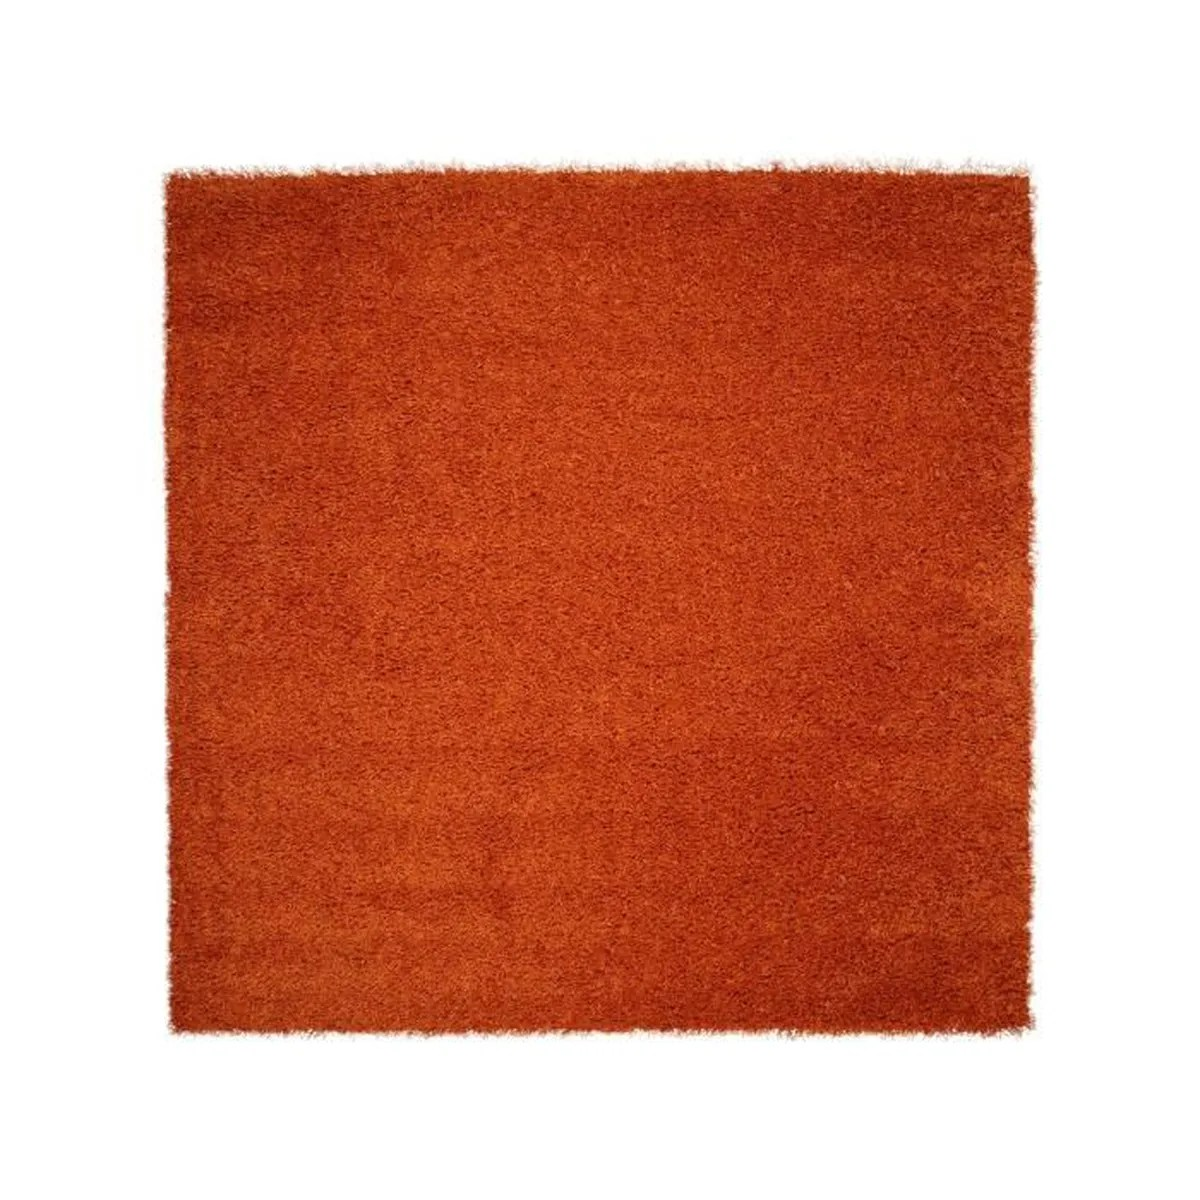 Tapis Shaggy Orange Tapis Shaggy à Poils Longs Cambria Orange 60x60 Cm Tapis